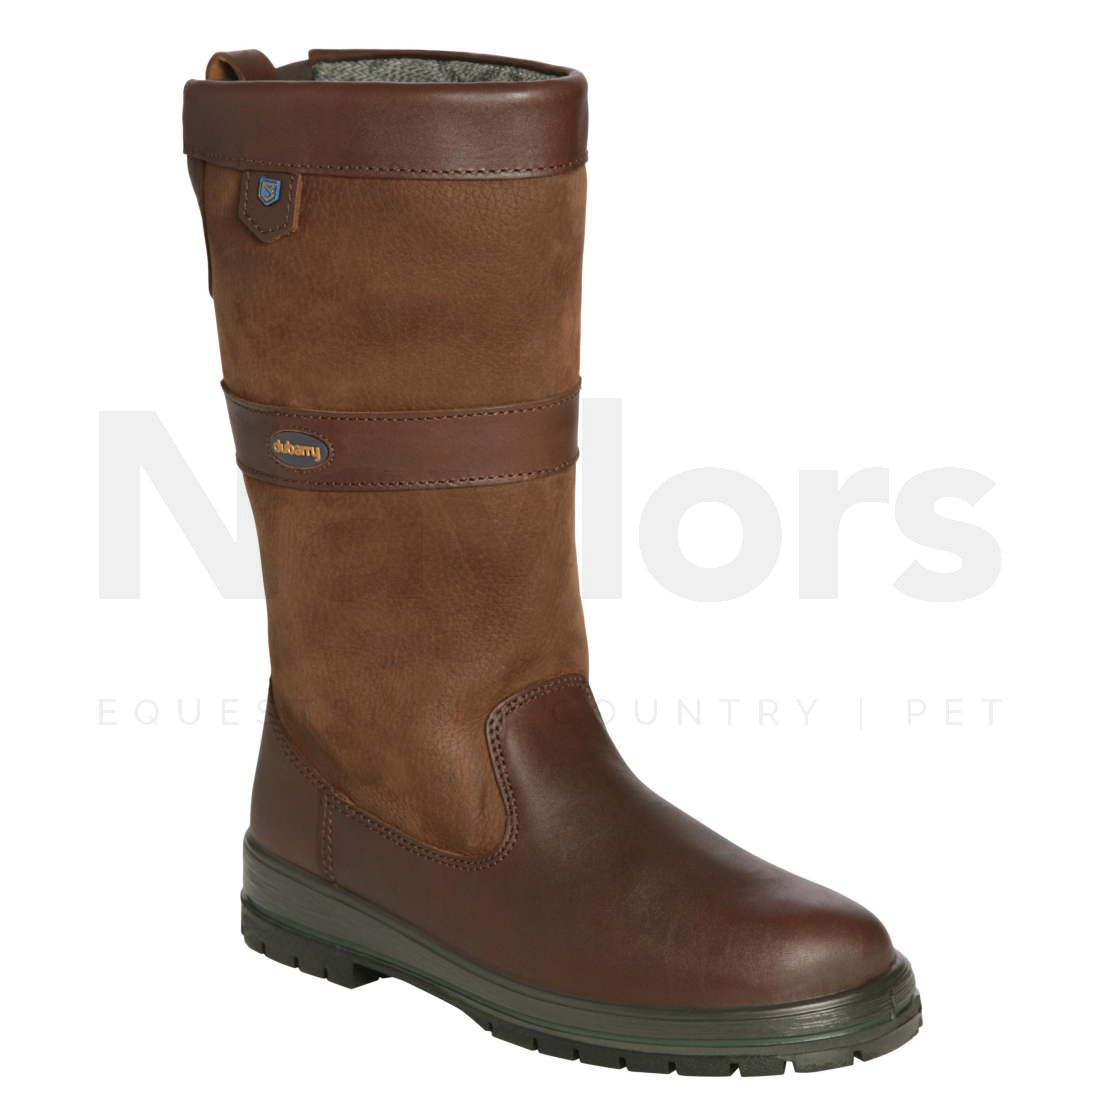 Dubarry Kildare Short Country Boots